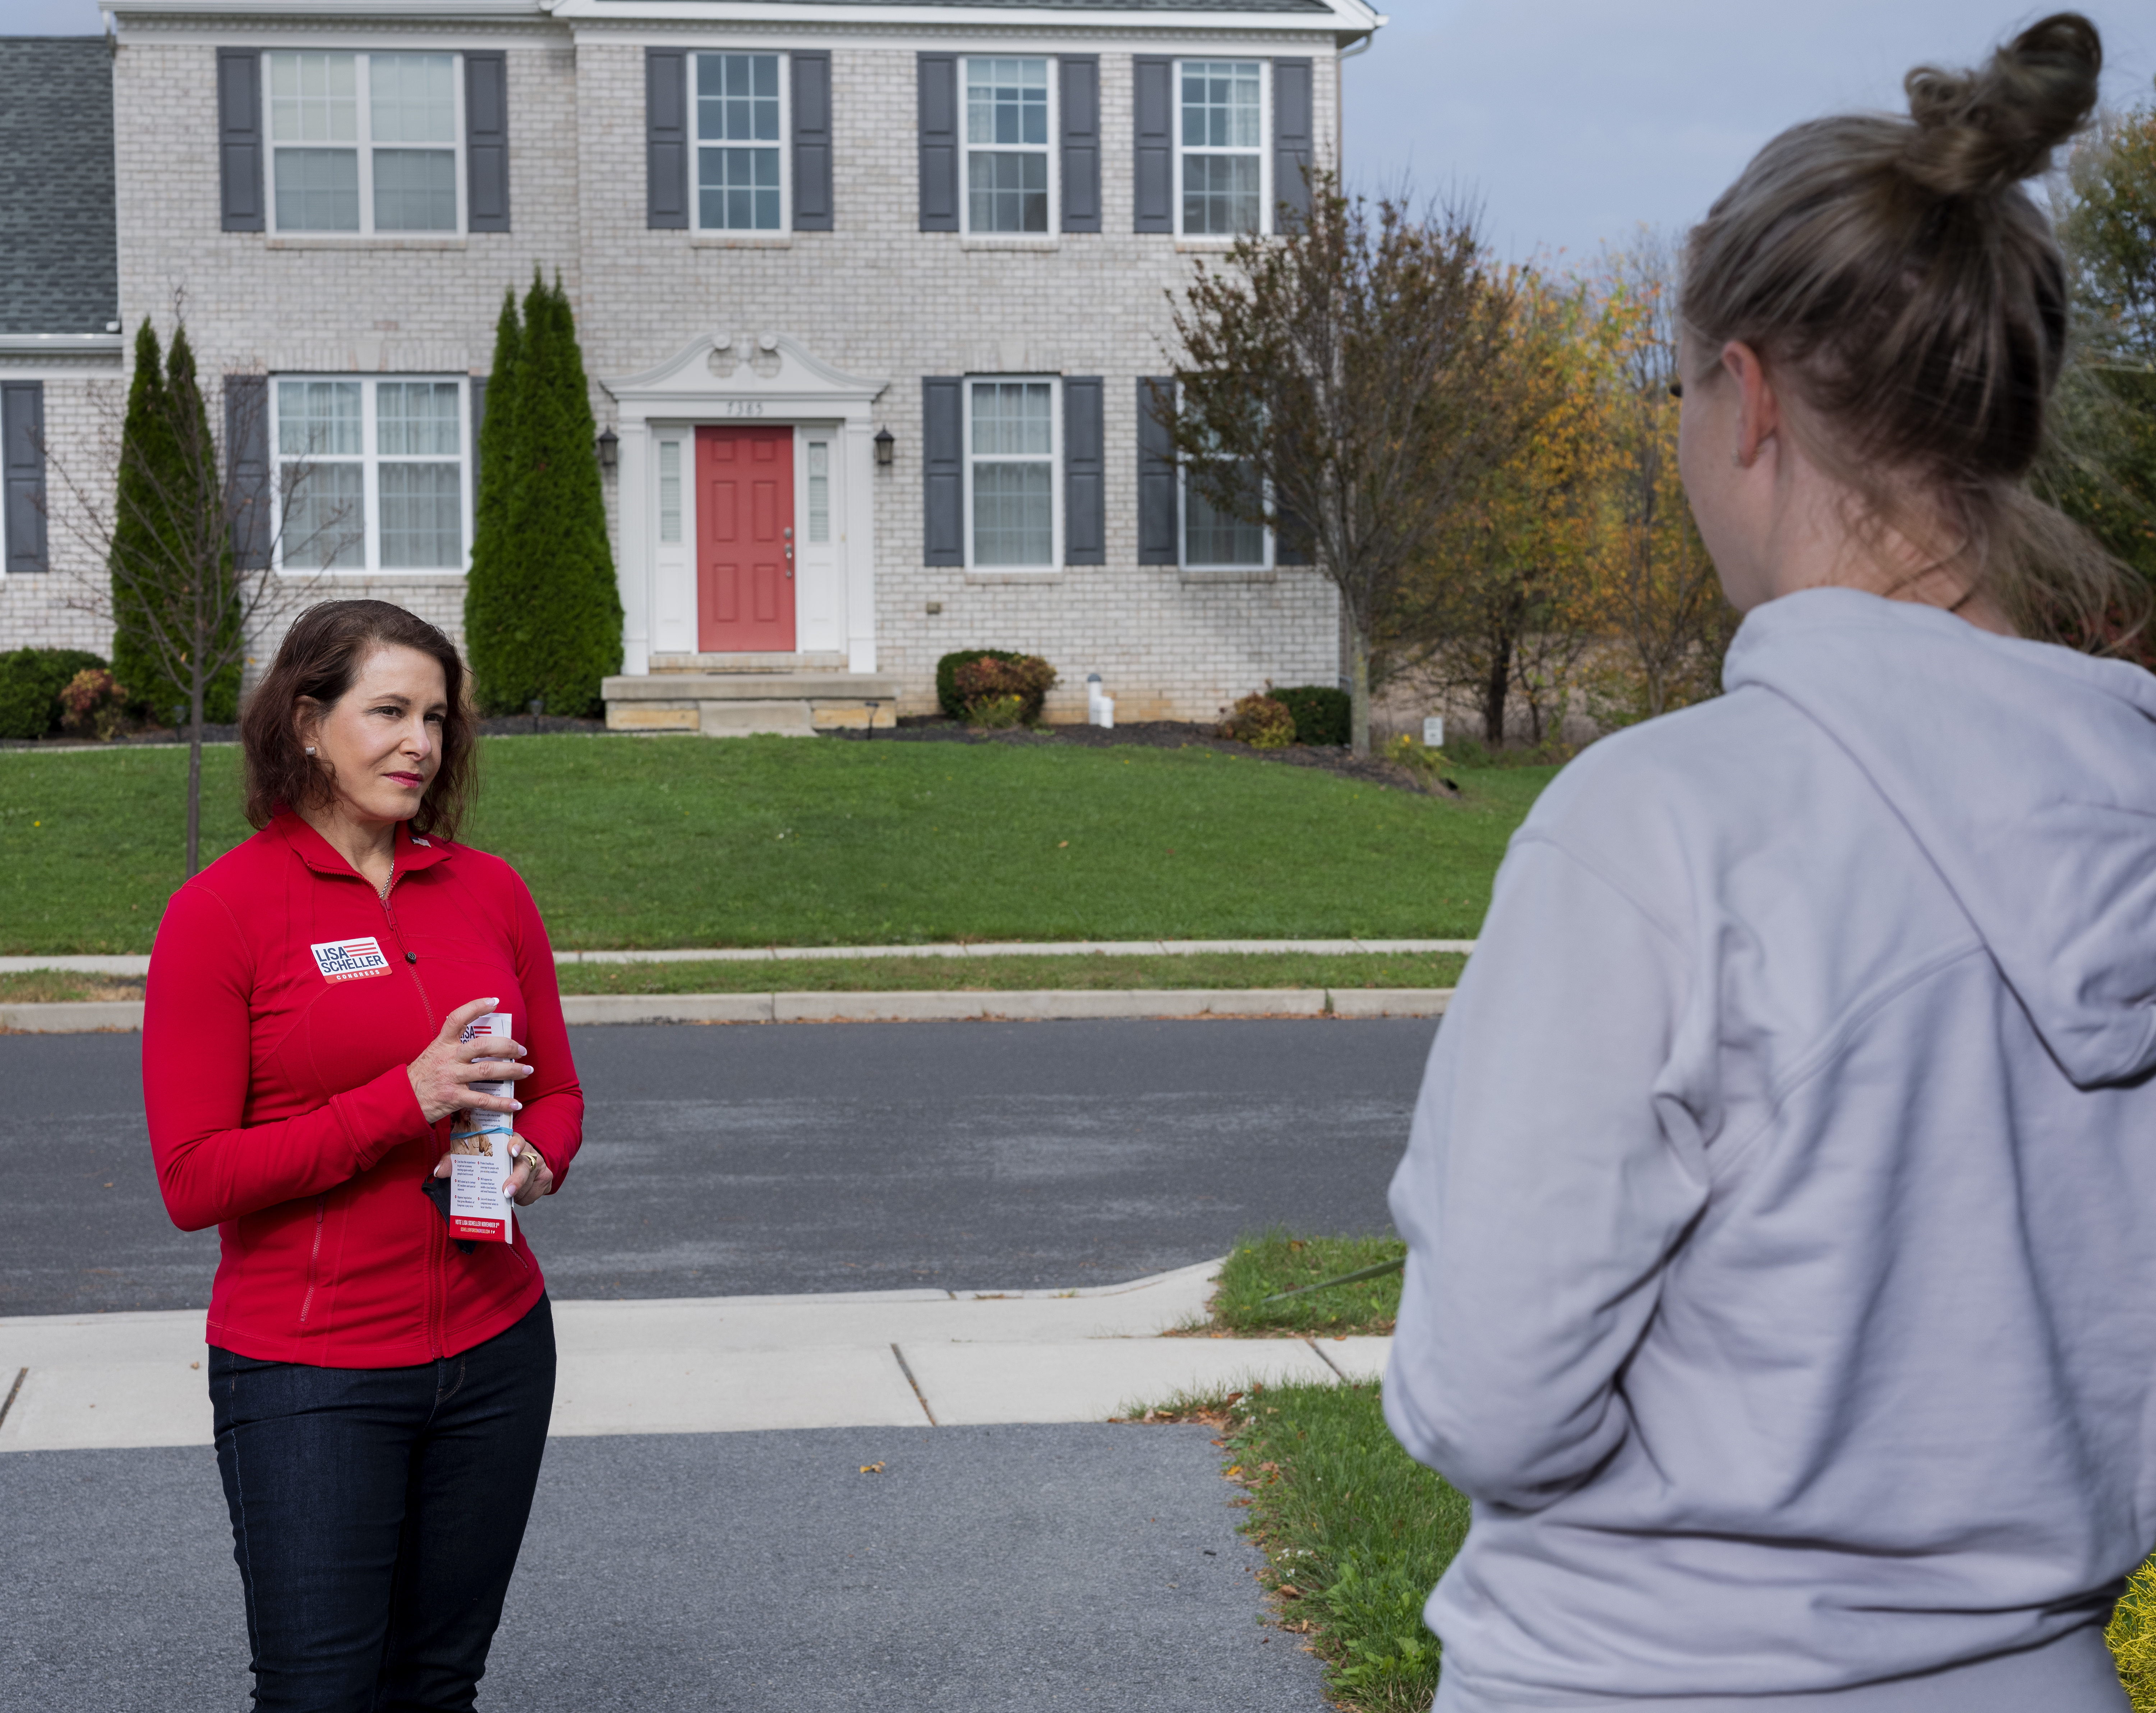 Republican nominee, Lisa Scheller, speaks with a resident while canvasing in Allentown, Pa., on Oct. 24, 2020.